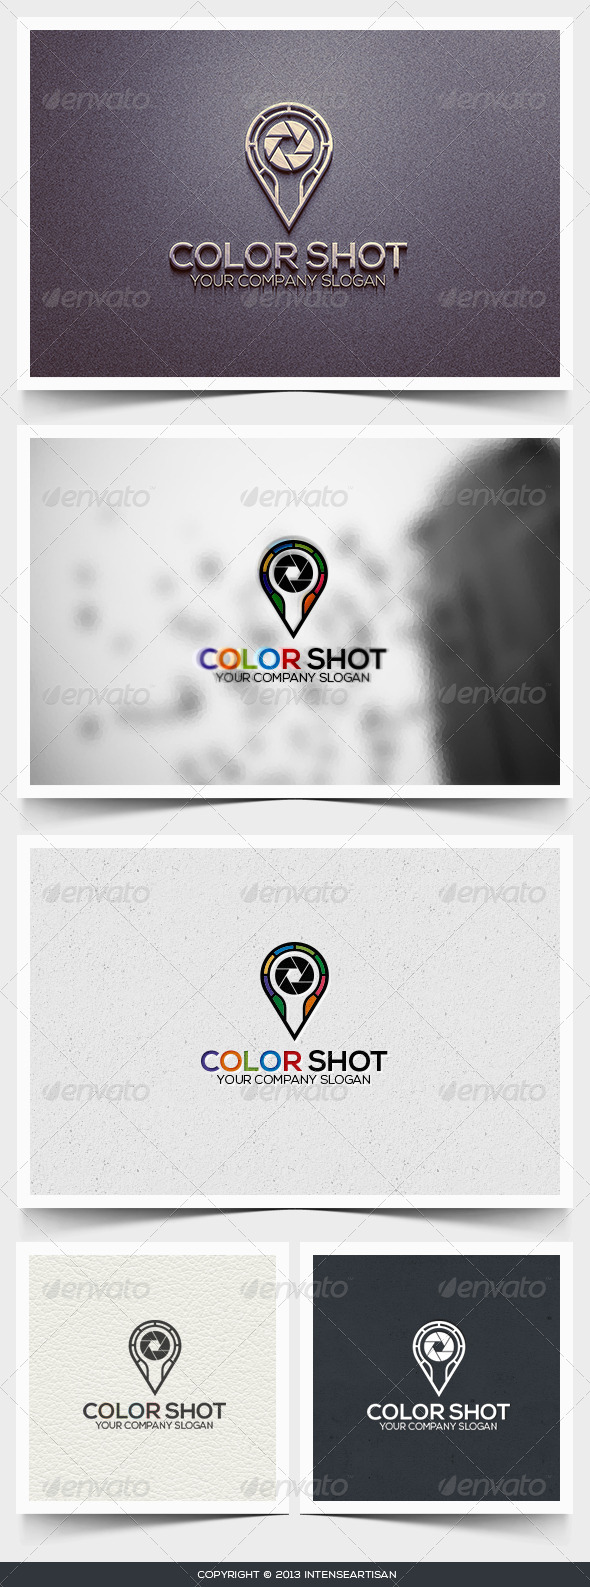 Color Shot Logo Template  - Objects Logo Templates